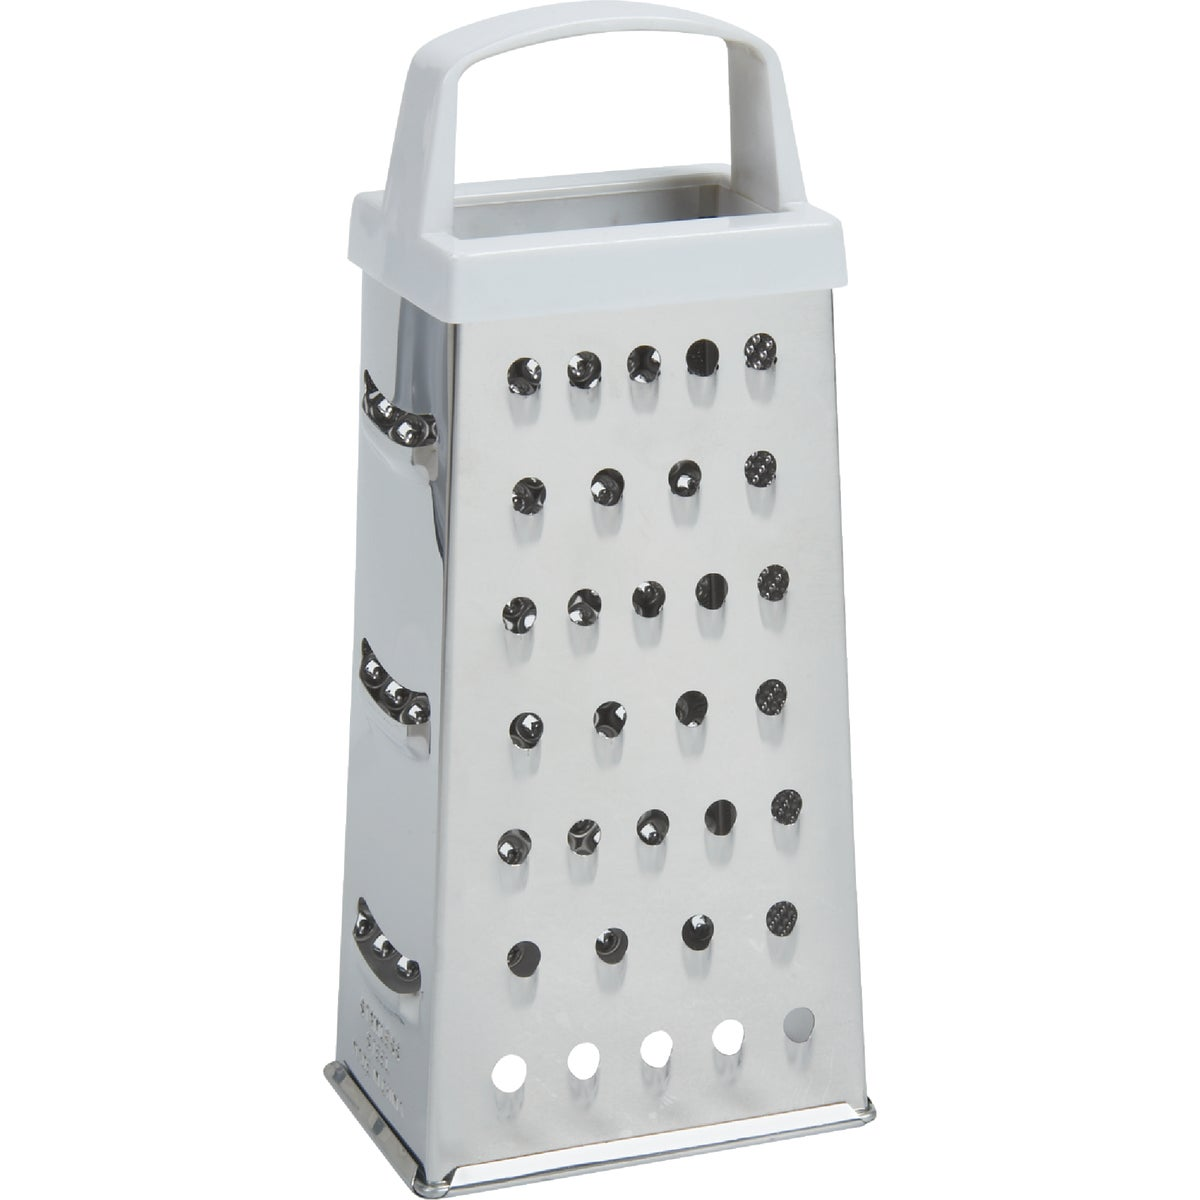 SMALL BOX GRATER - 1094875 by World Kitchen  Ekco